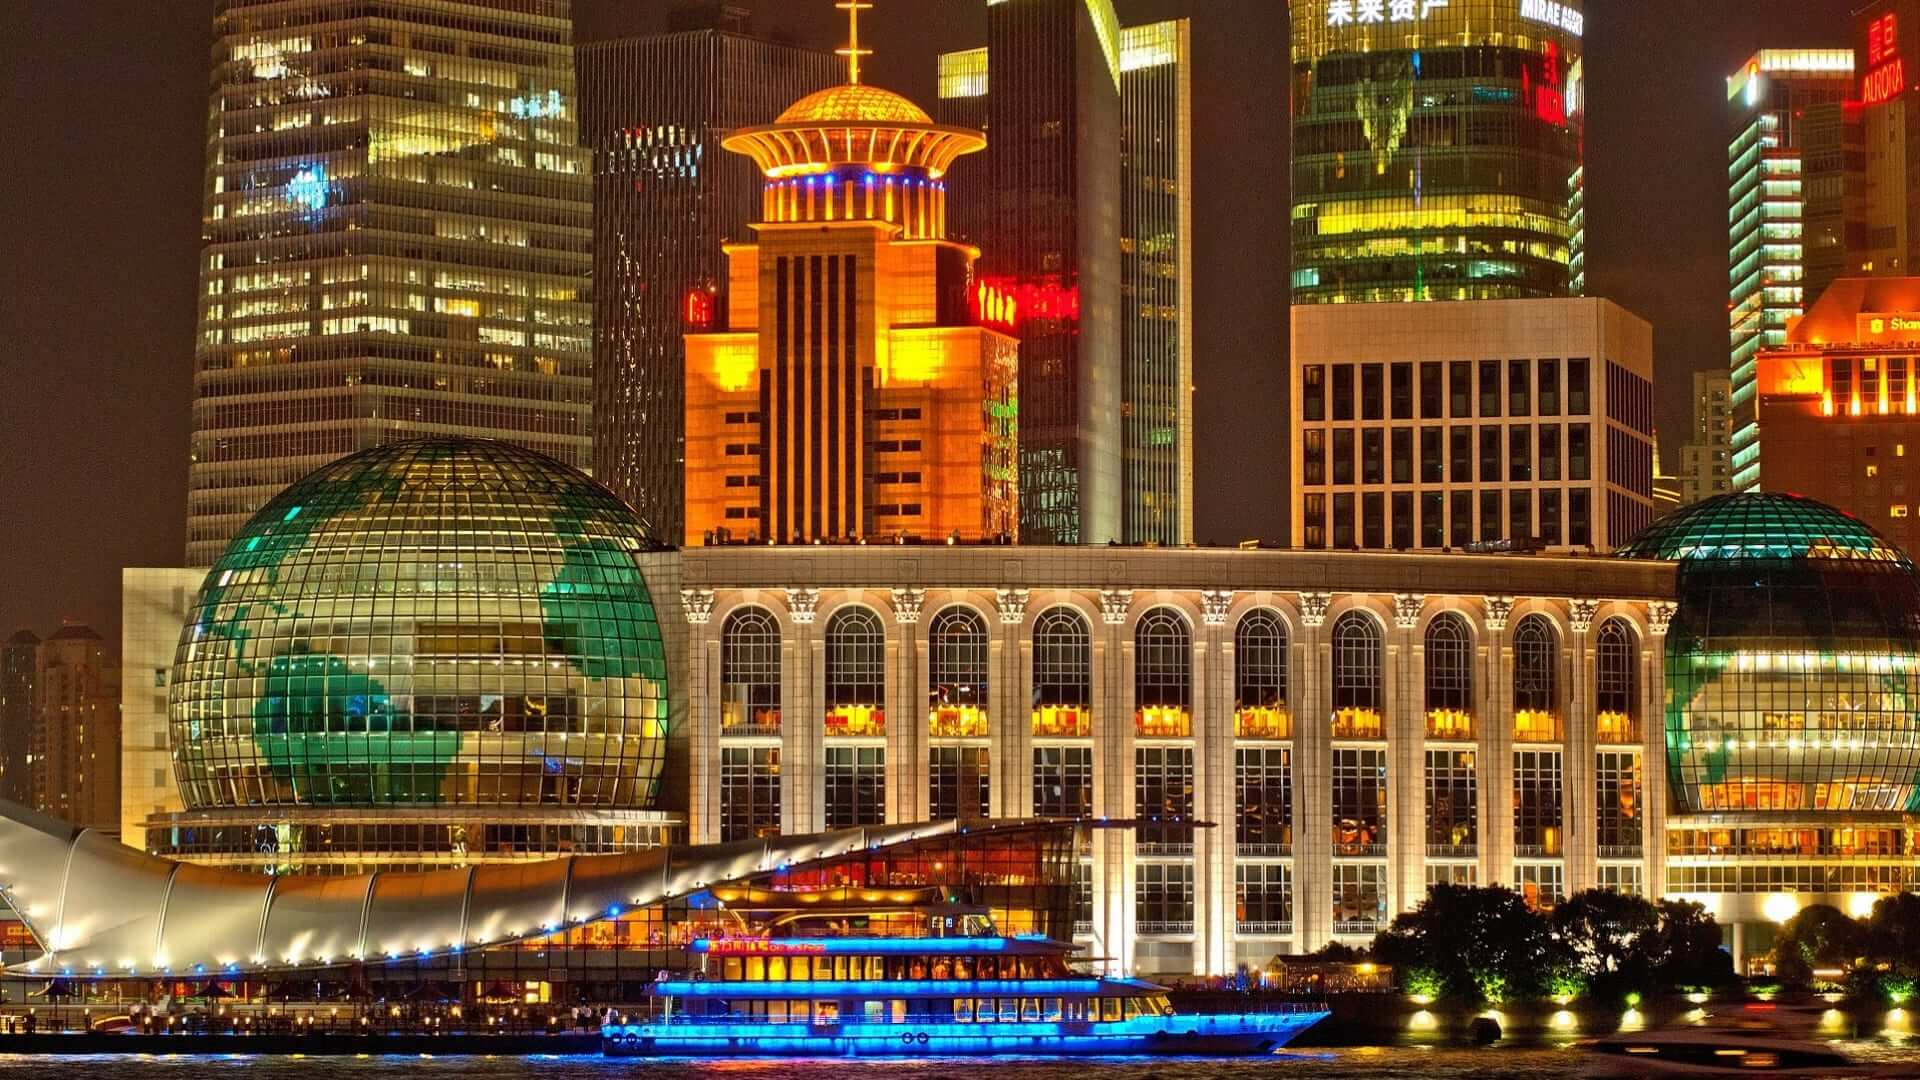 Illuminated buildings in Shanghai during night in China.